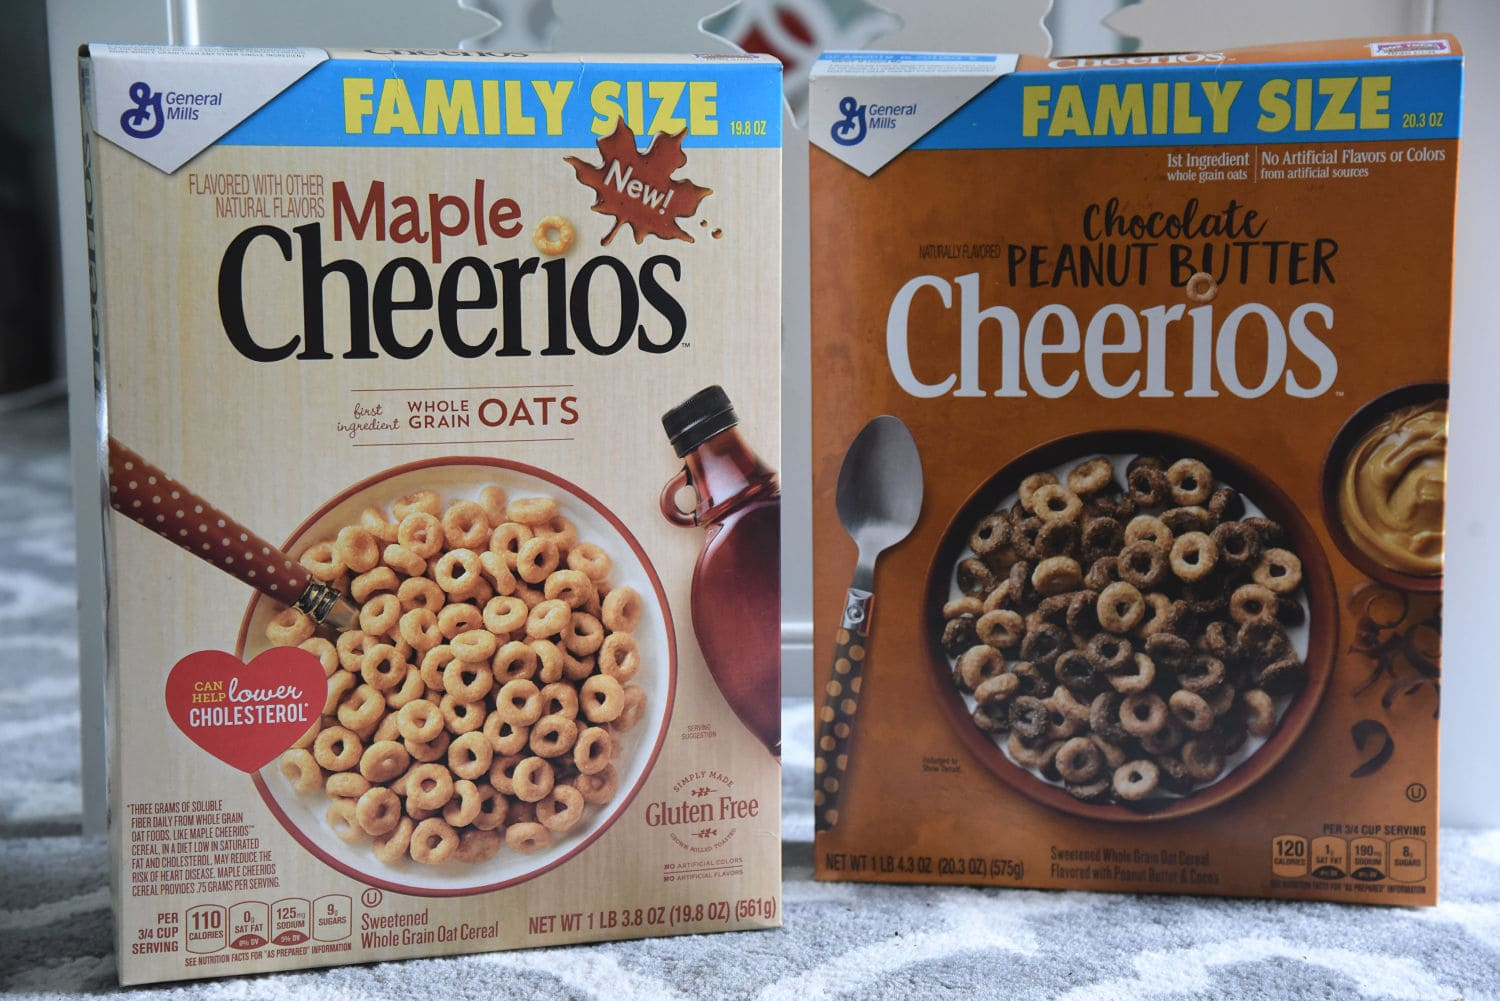 New flavors of Cheerios